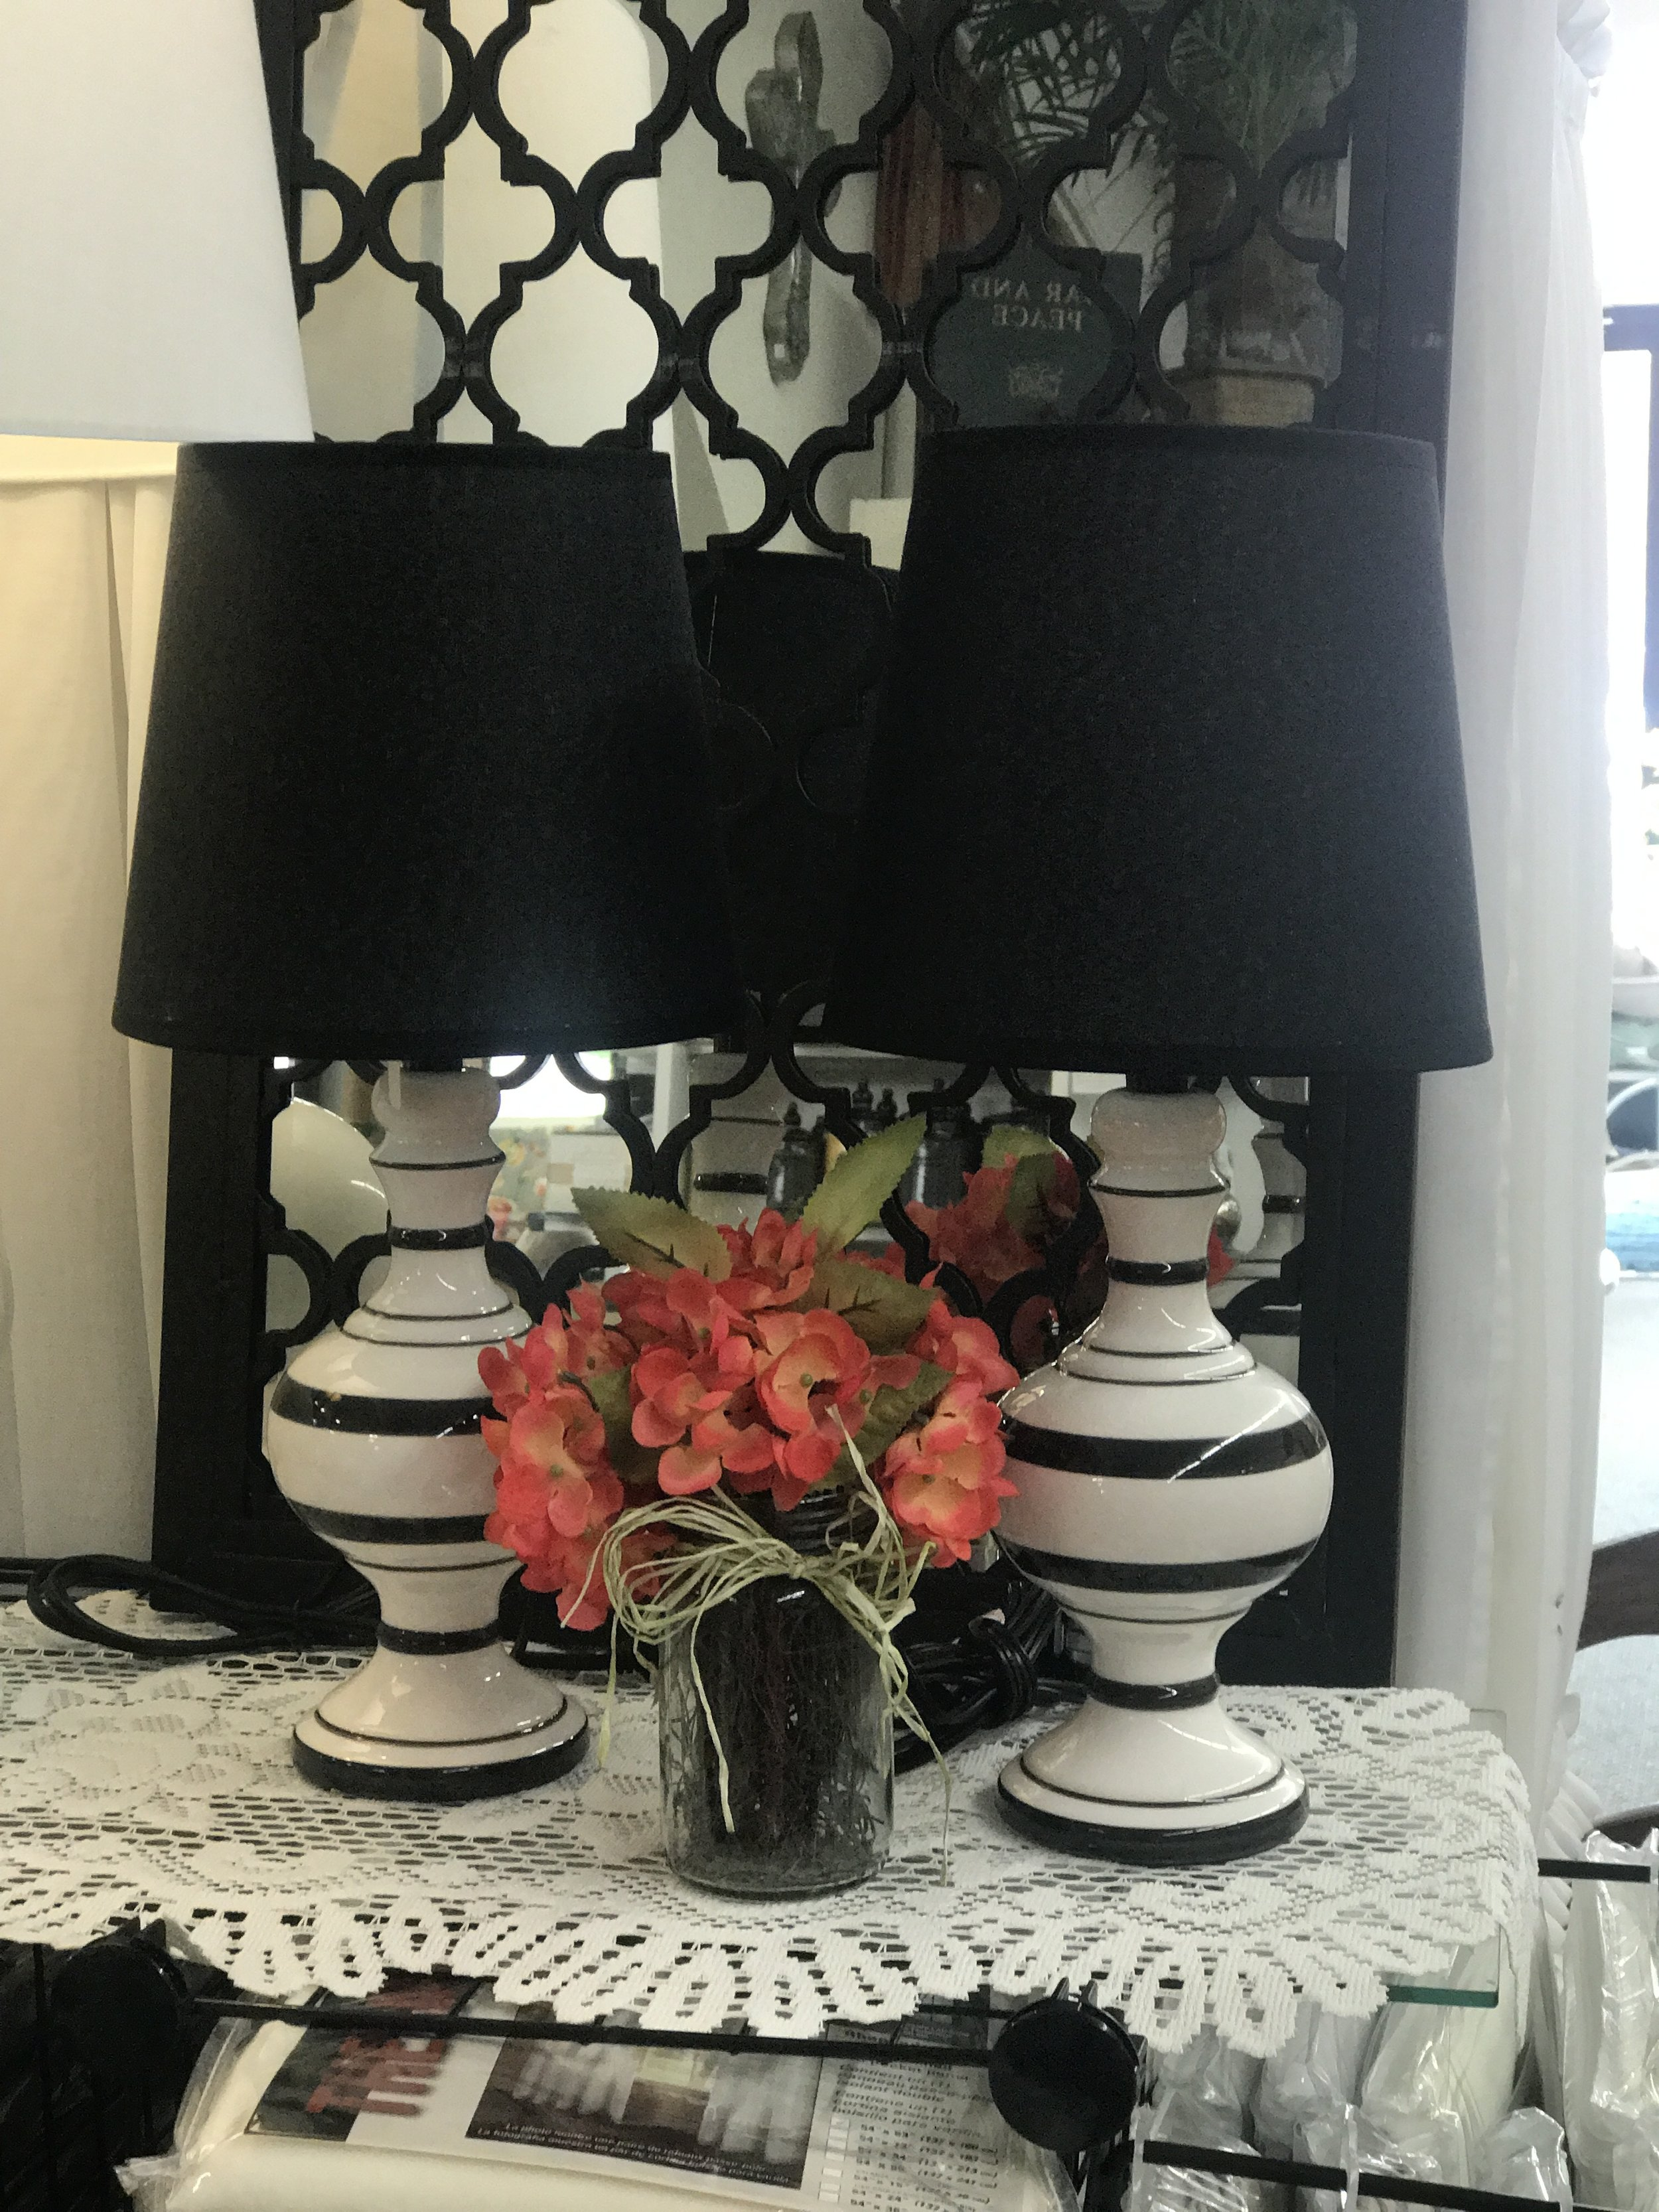 Small Black and White Stripe Lamps